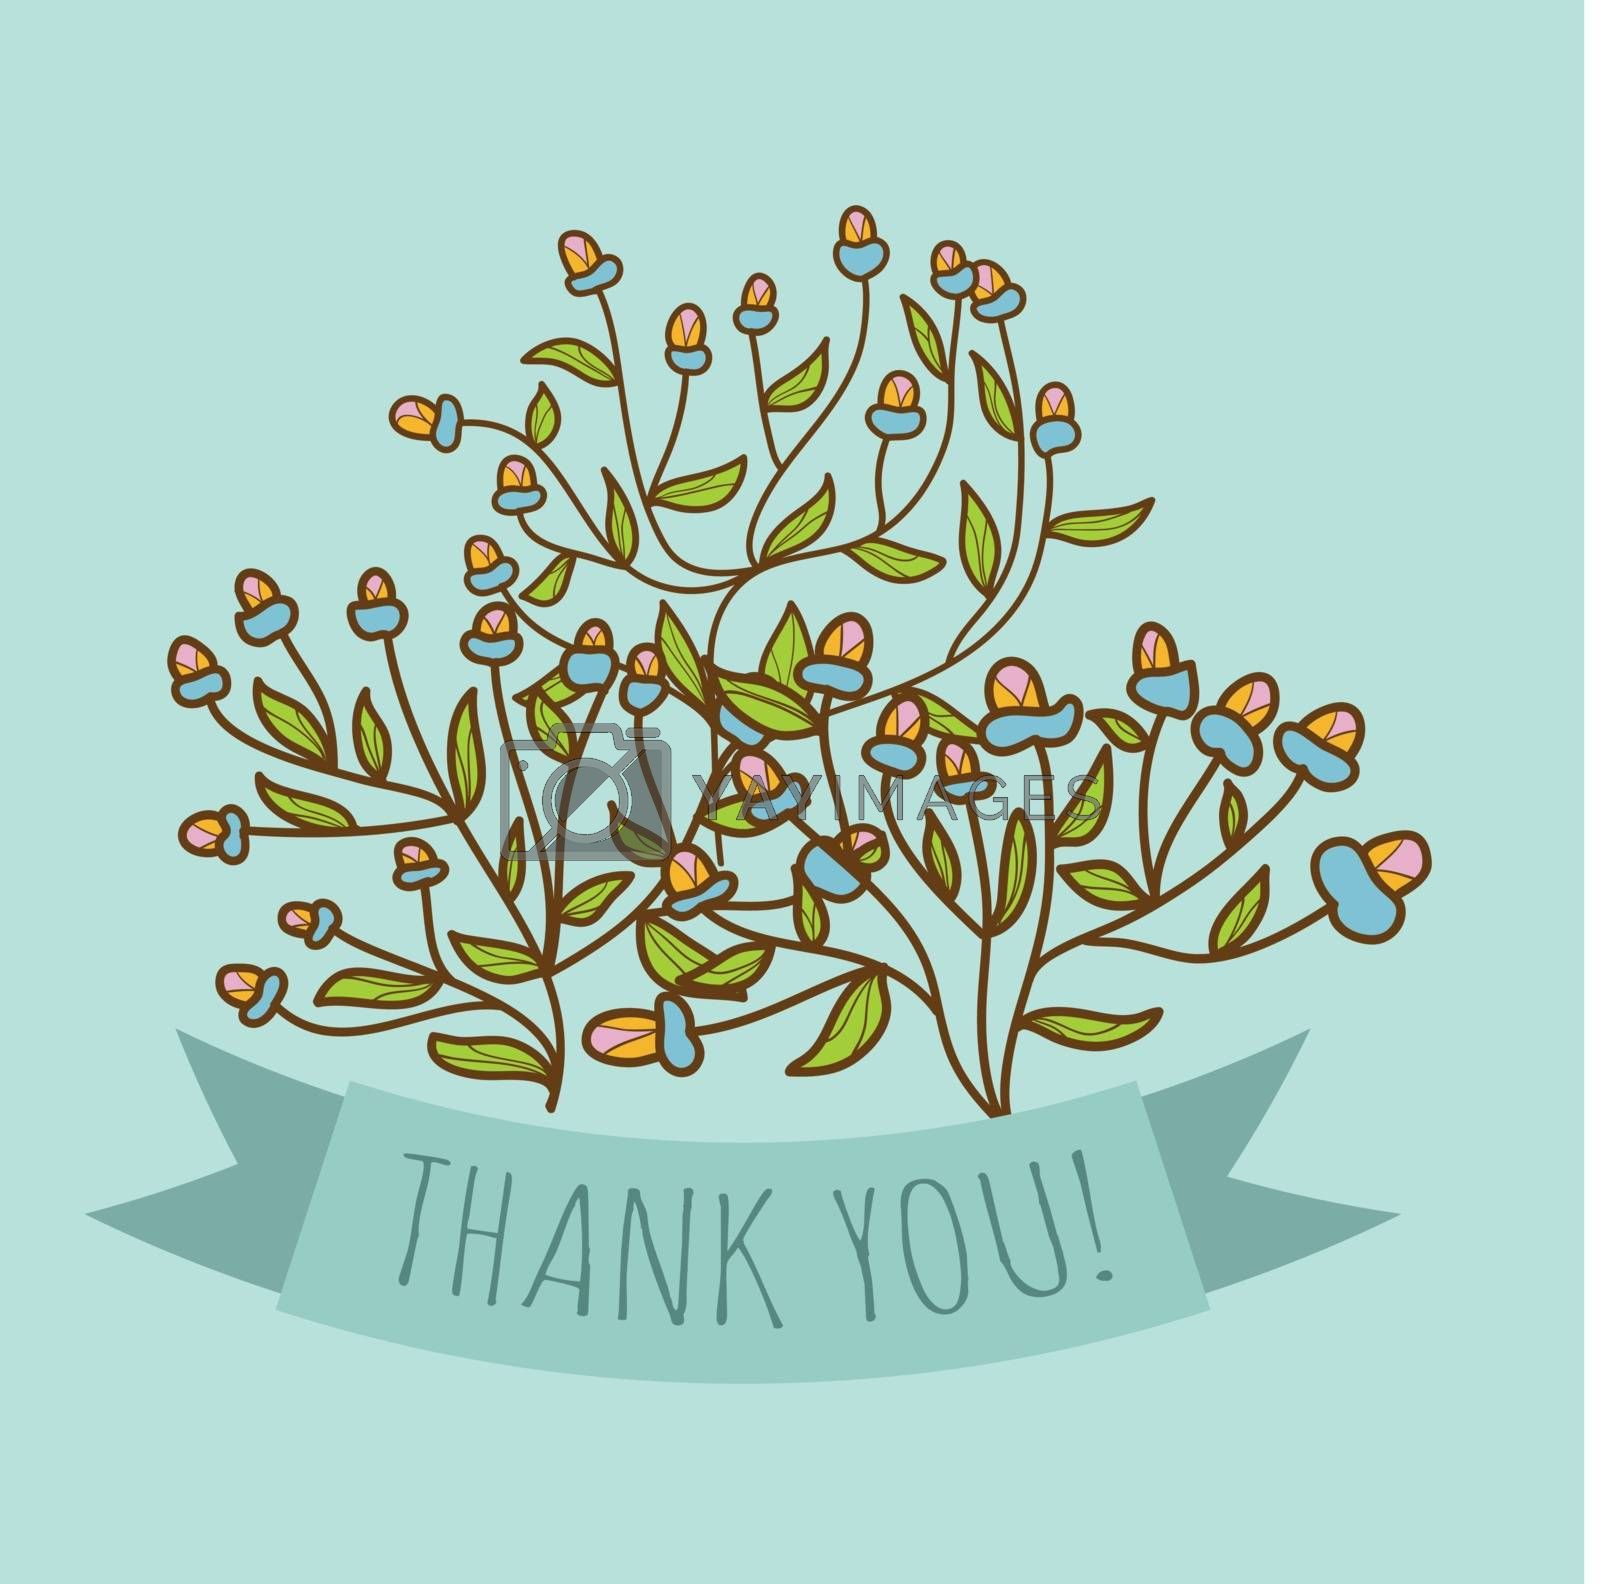 Thank you greeting card with bud flower